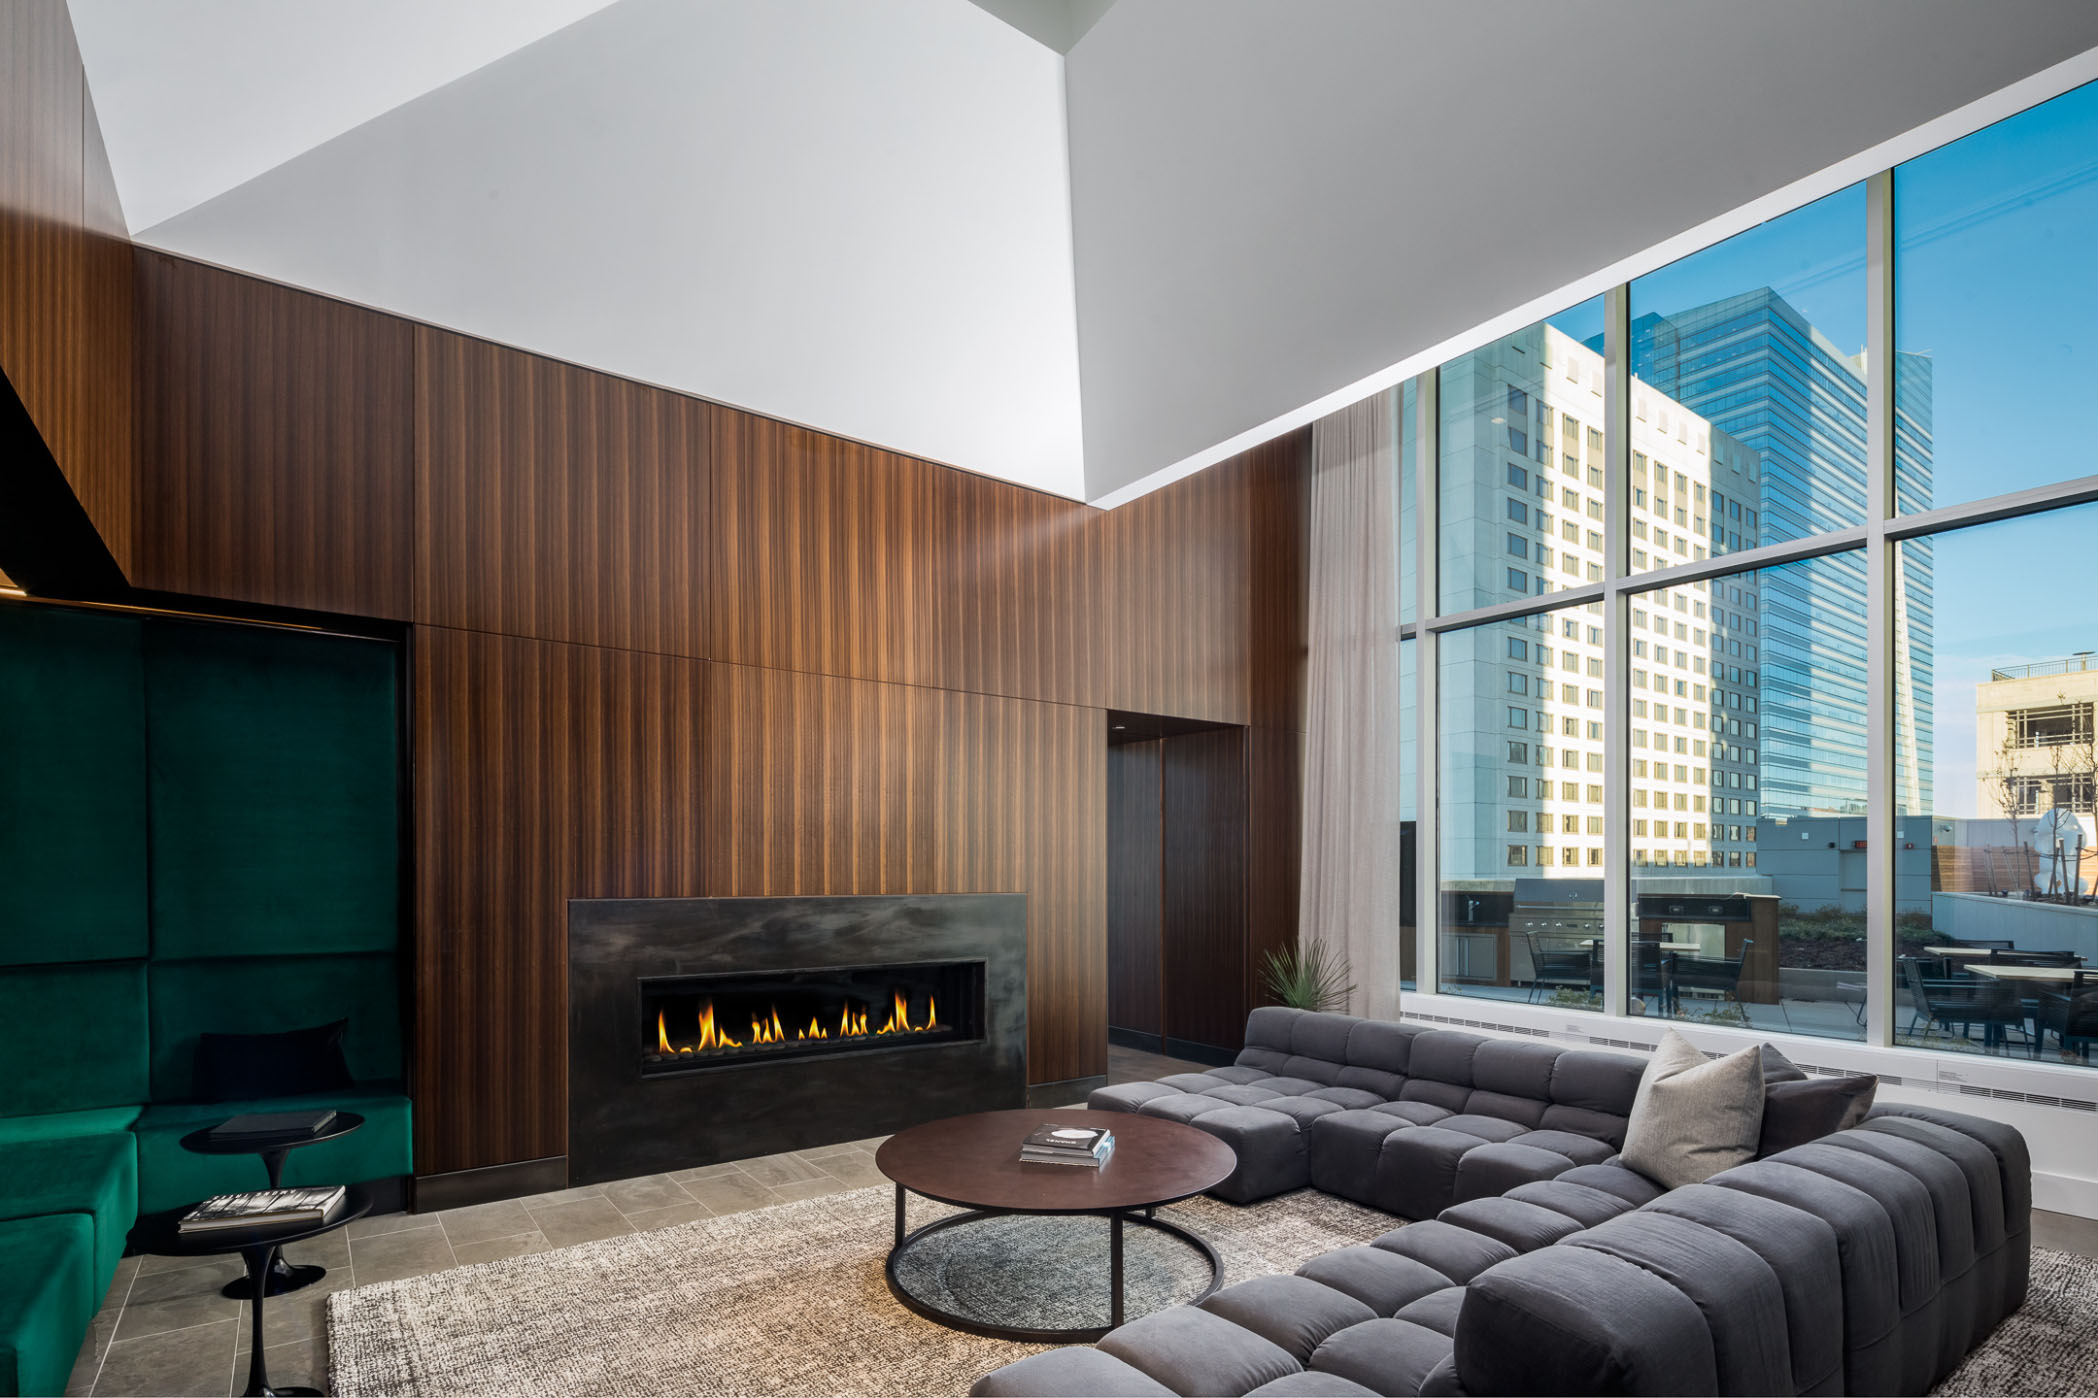 resident lounge with giant wall of window fire place and luxury gray couch